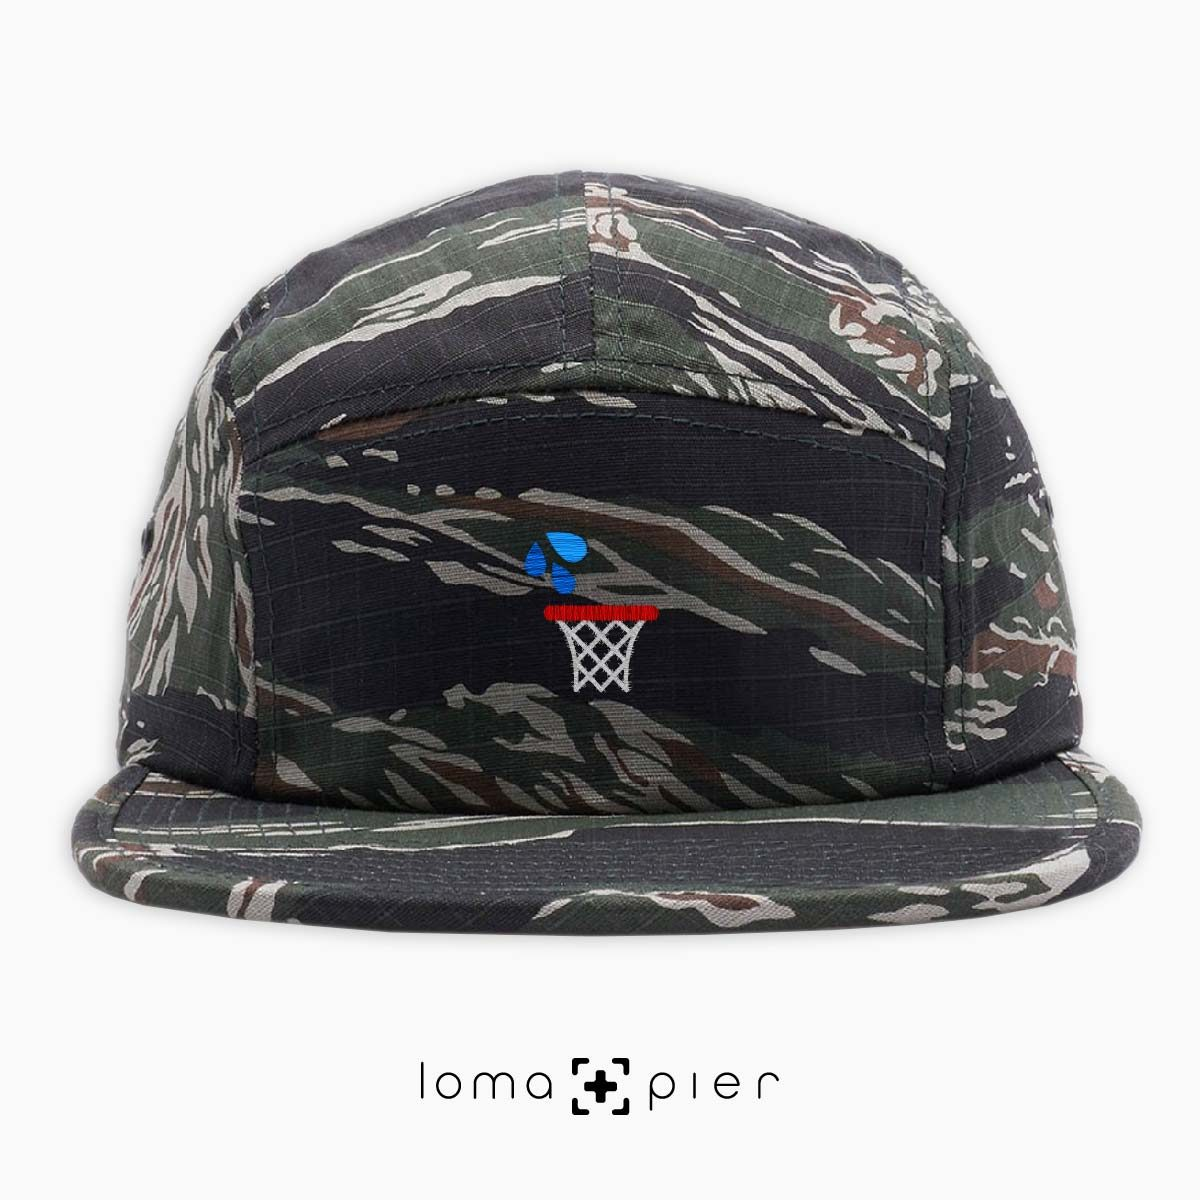 WET JUMPER basketball hoop icon embroidered on a tiger camo cotton 5-panel hat by loma+pier hat store